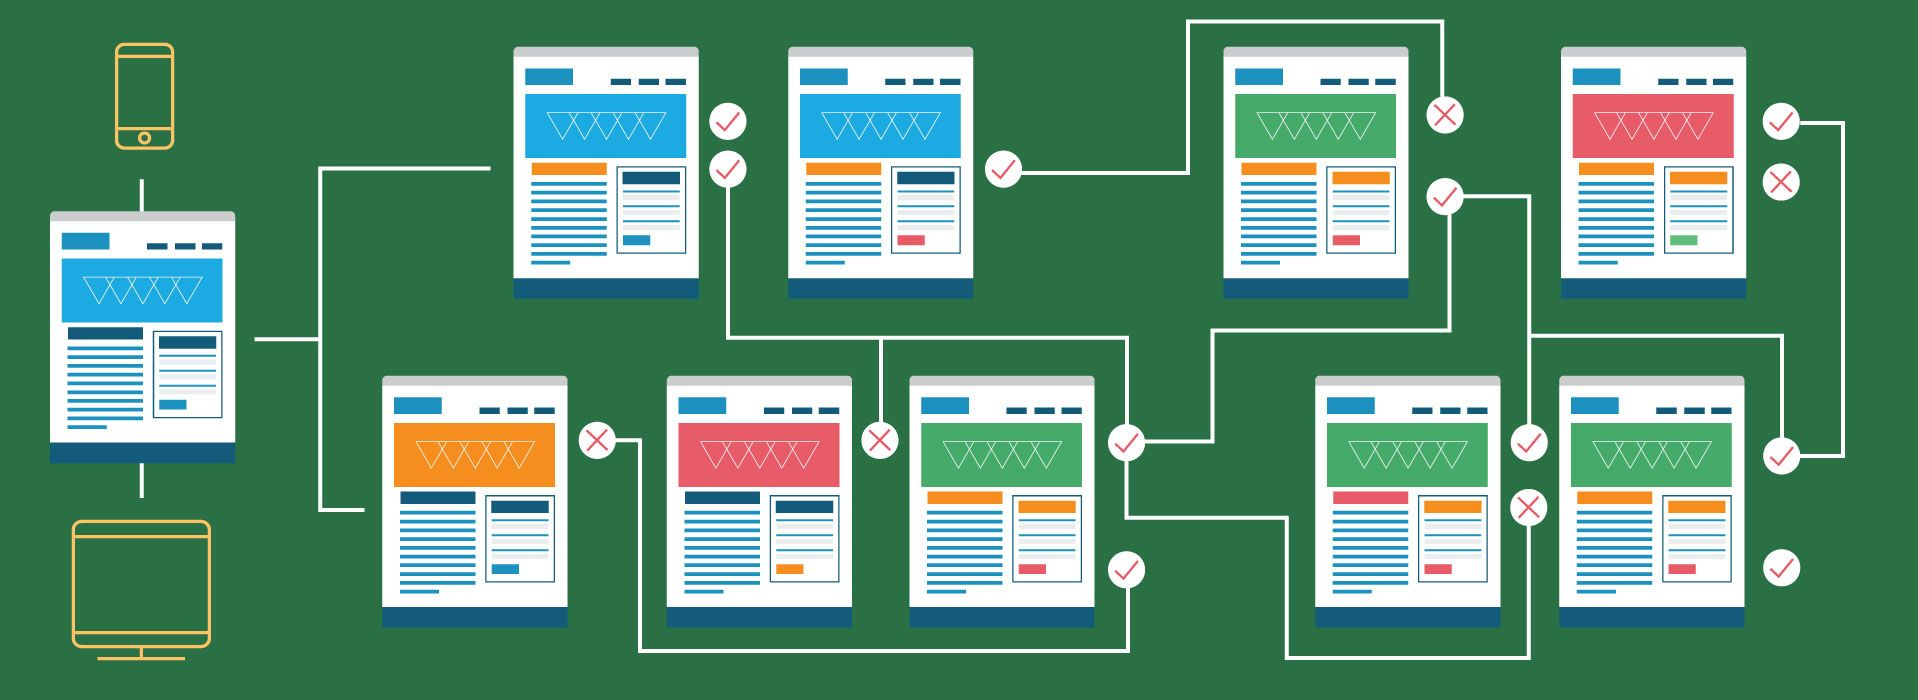 Beyond A vs. B: How to get better results with better experiment design http://feedproxy.google.com/~r/Widerfunnel/~3/-OaiHR4hTB4?utm_source=rss&utm_medium=Friendly Connect&utm_campaign=RSS @widerfunnel